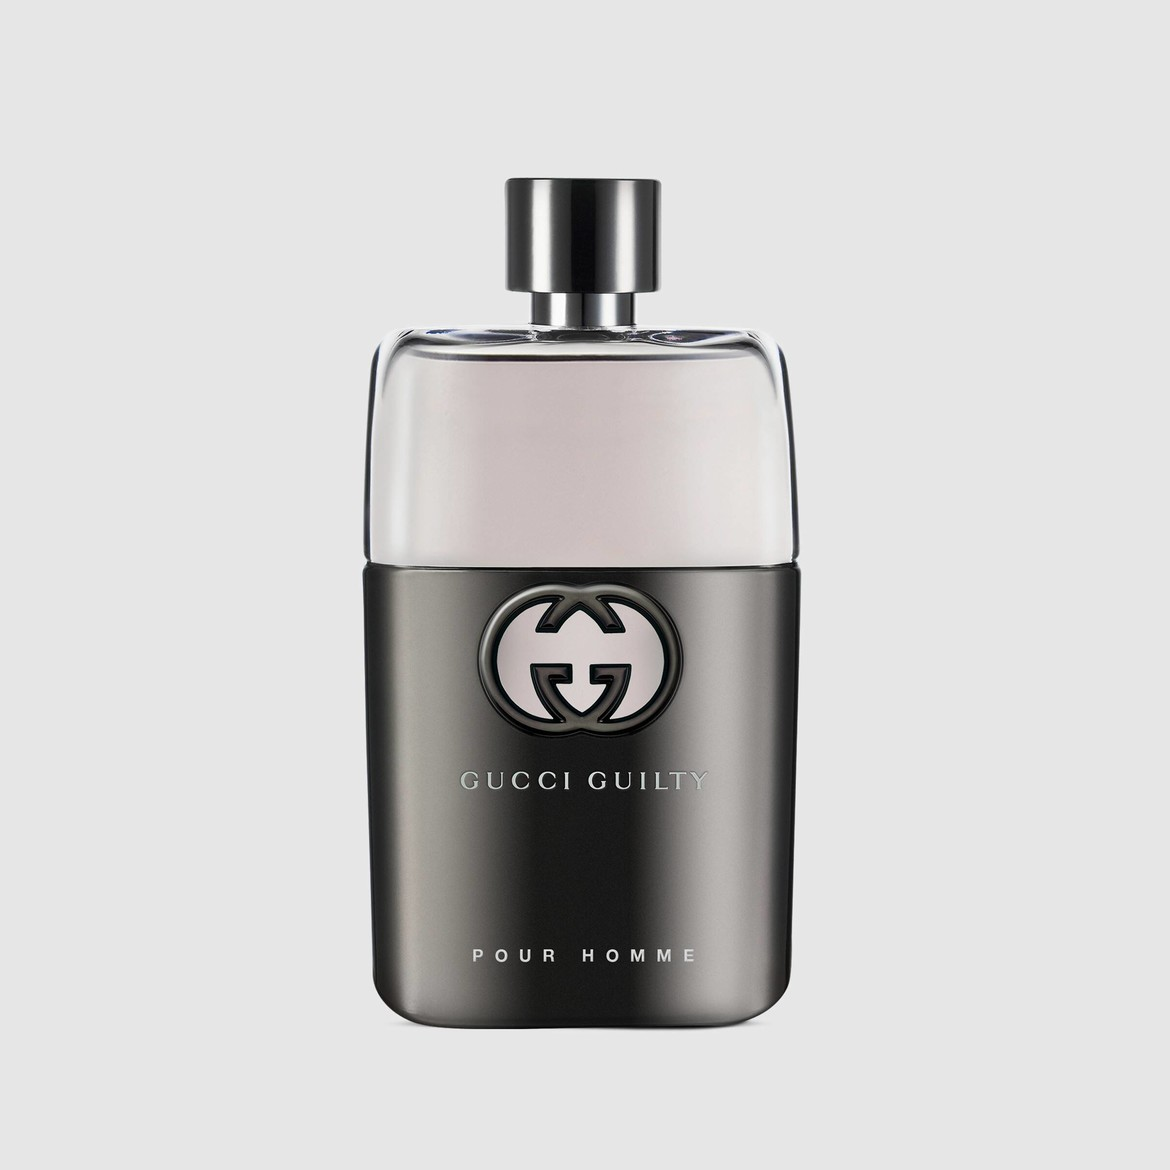 Gucci Guilty Pour Homme香水(HK$810/90ml)